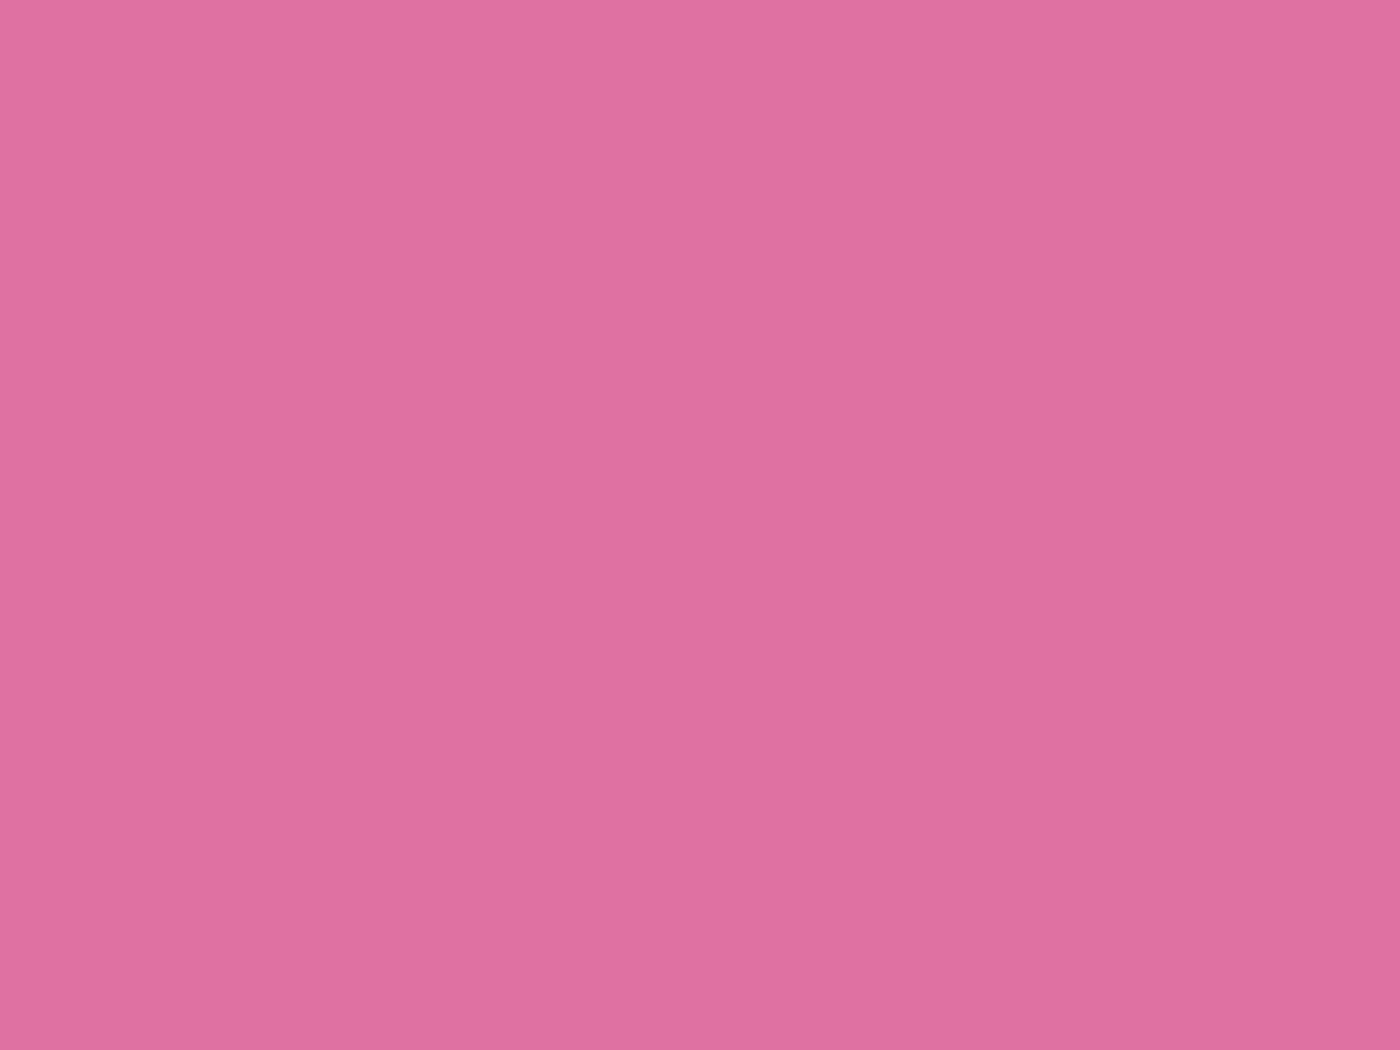 1400x1050 Thulian Pink Solid Color Background